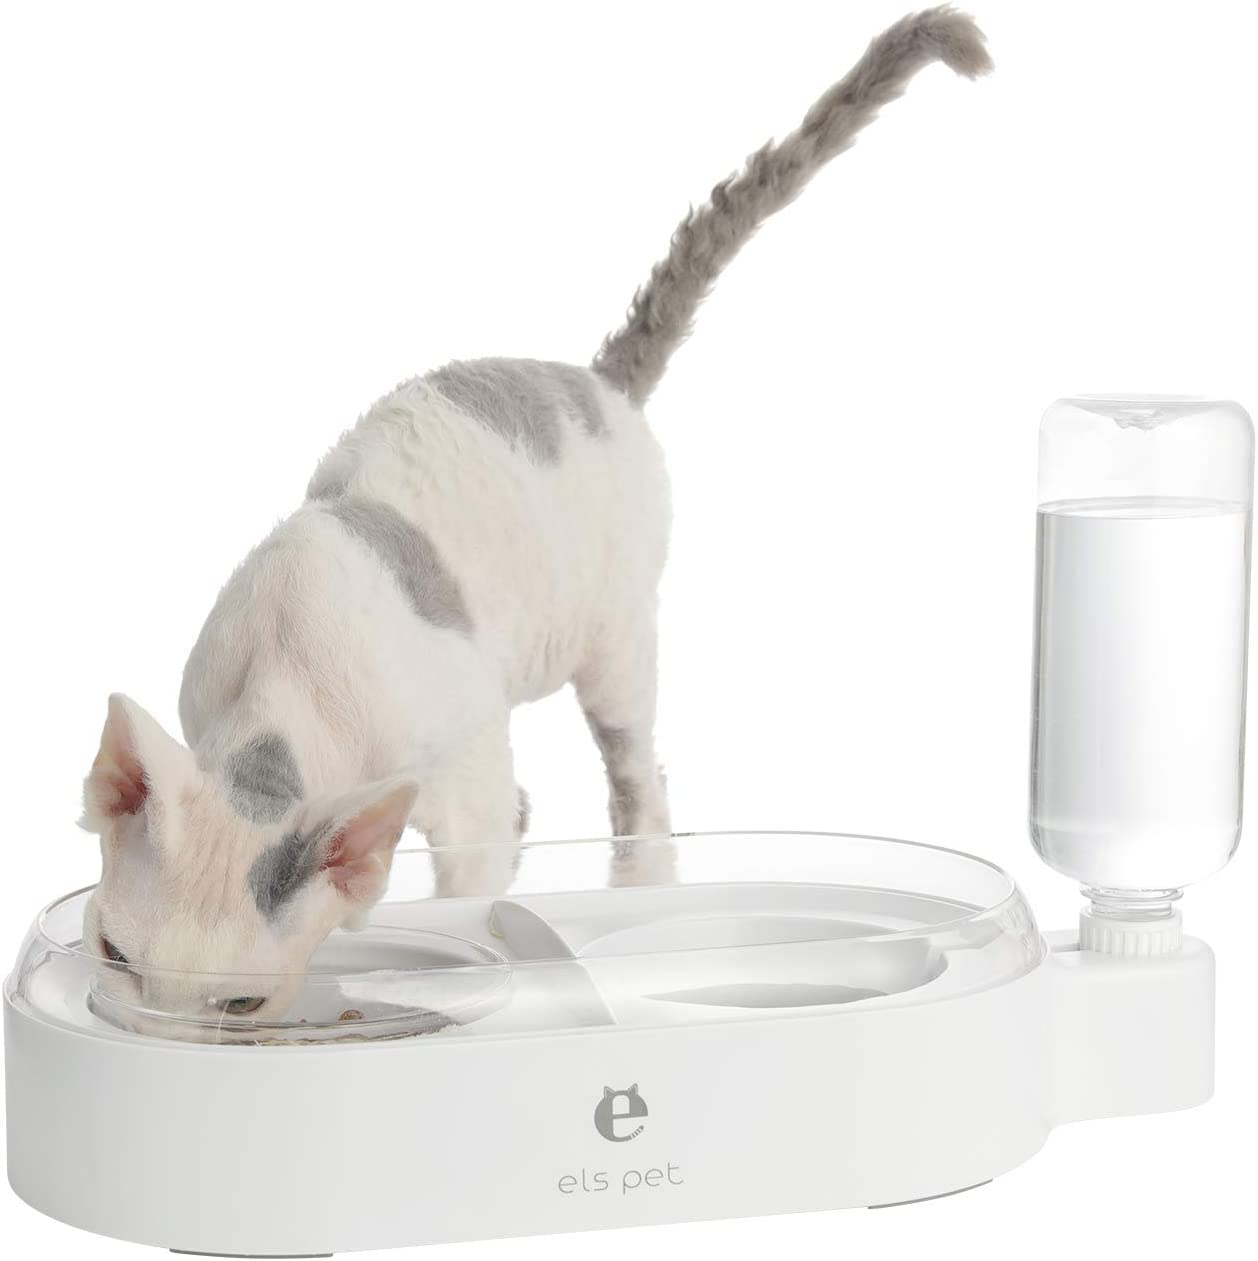 Double Dog Cat Bowls, Gravity Food and Water Bowl, Pet Automatic Drinking Dispenser Detachable Transparent Glass Feeder Bowls No-Spill Raised Bowl for Small Dogs and Cats